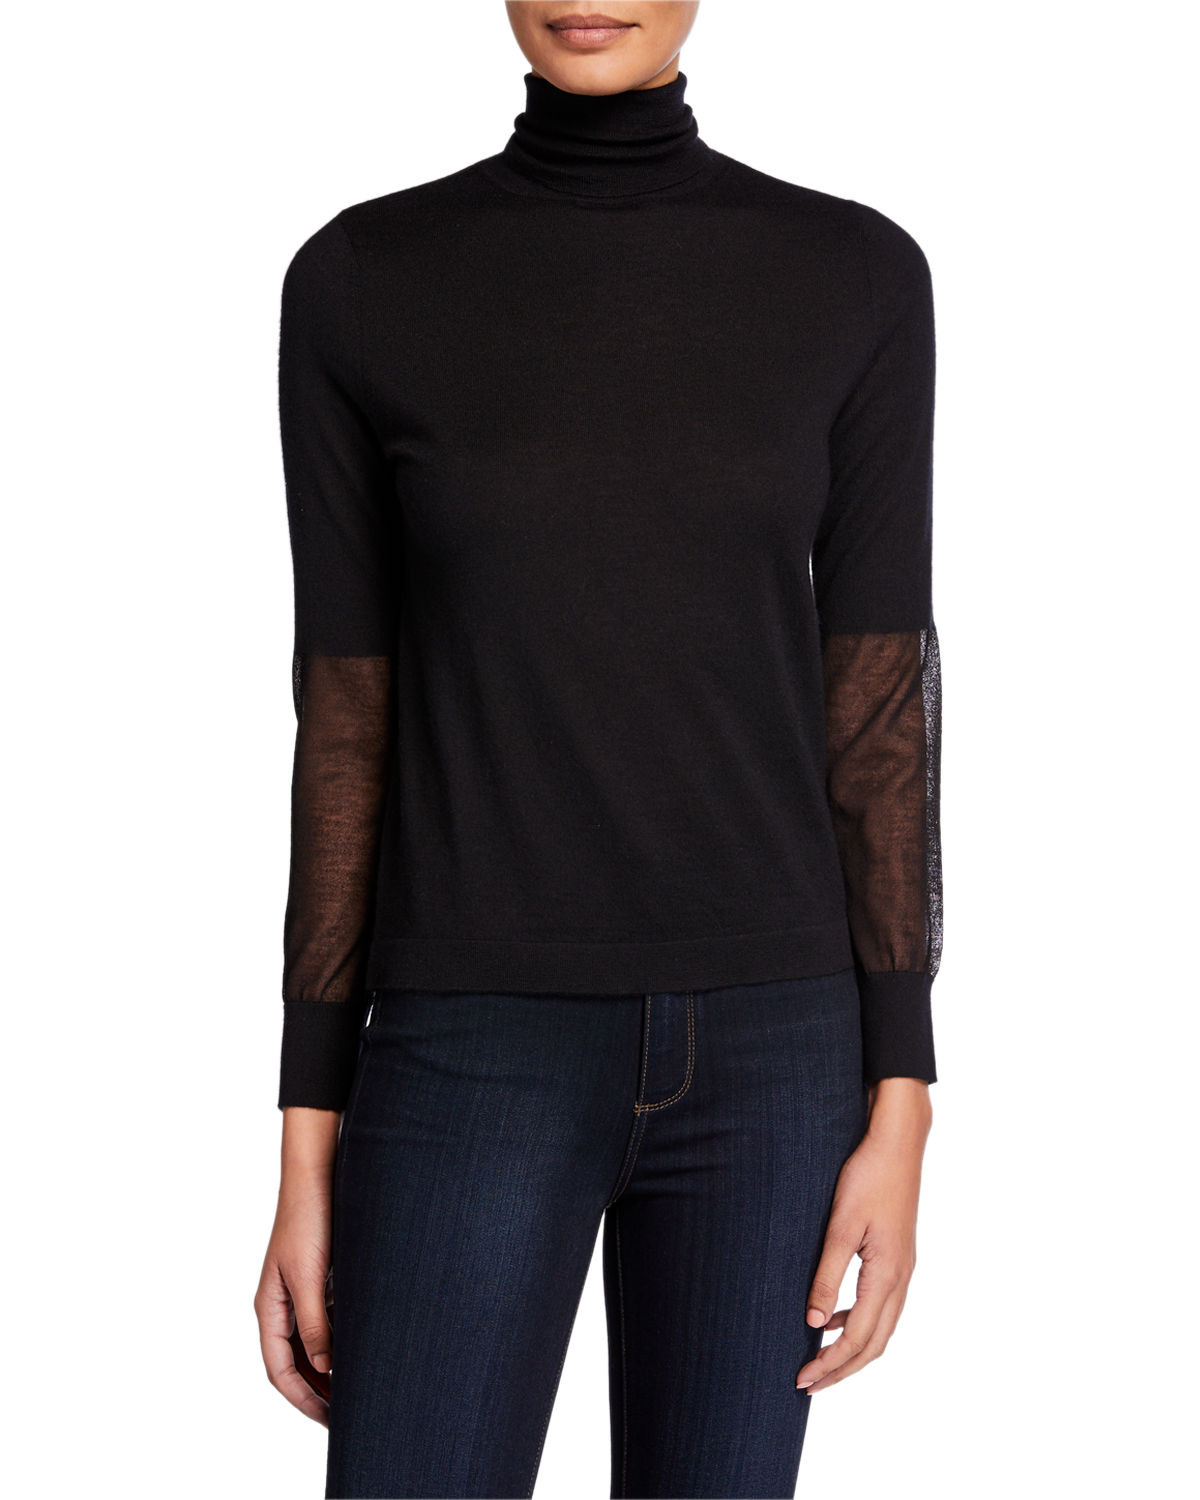 Superfine Cashmere Turtleneck Sweater with Sheer Panels